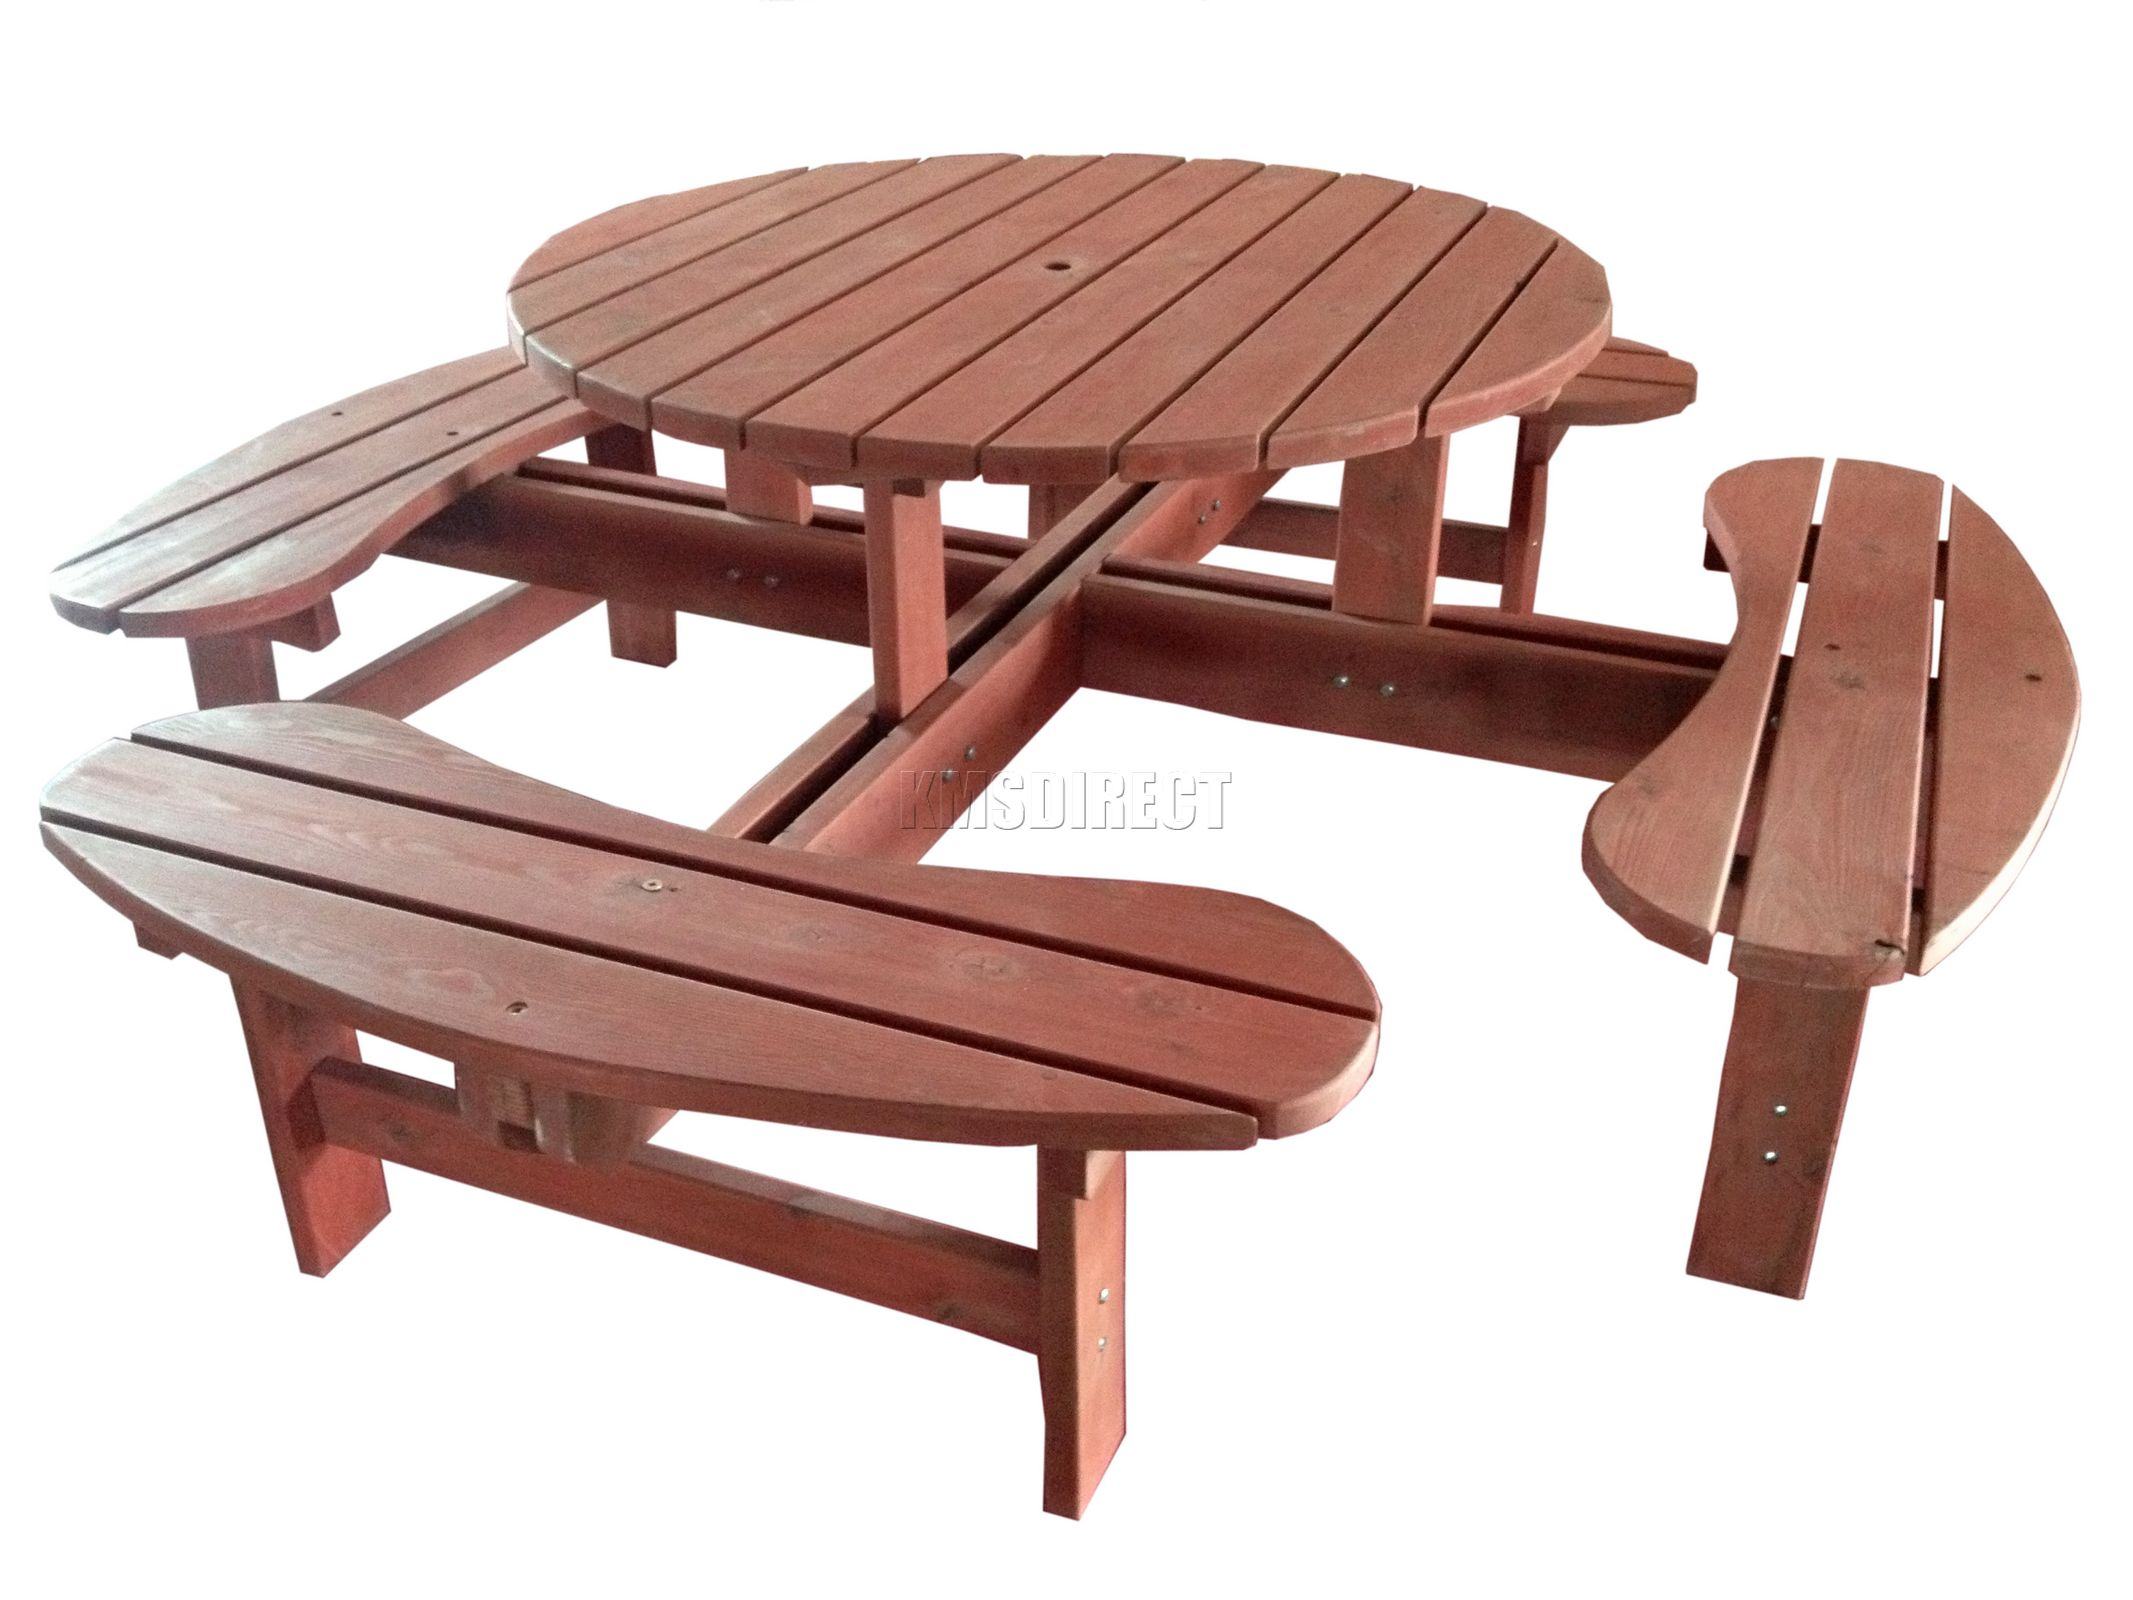 Garden patio 8 seat seater wooden pub bench round picnic - Table ronde bois jardin ...